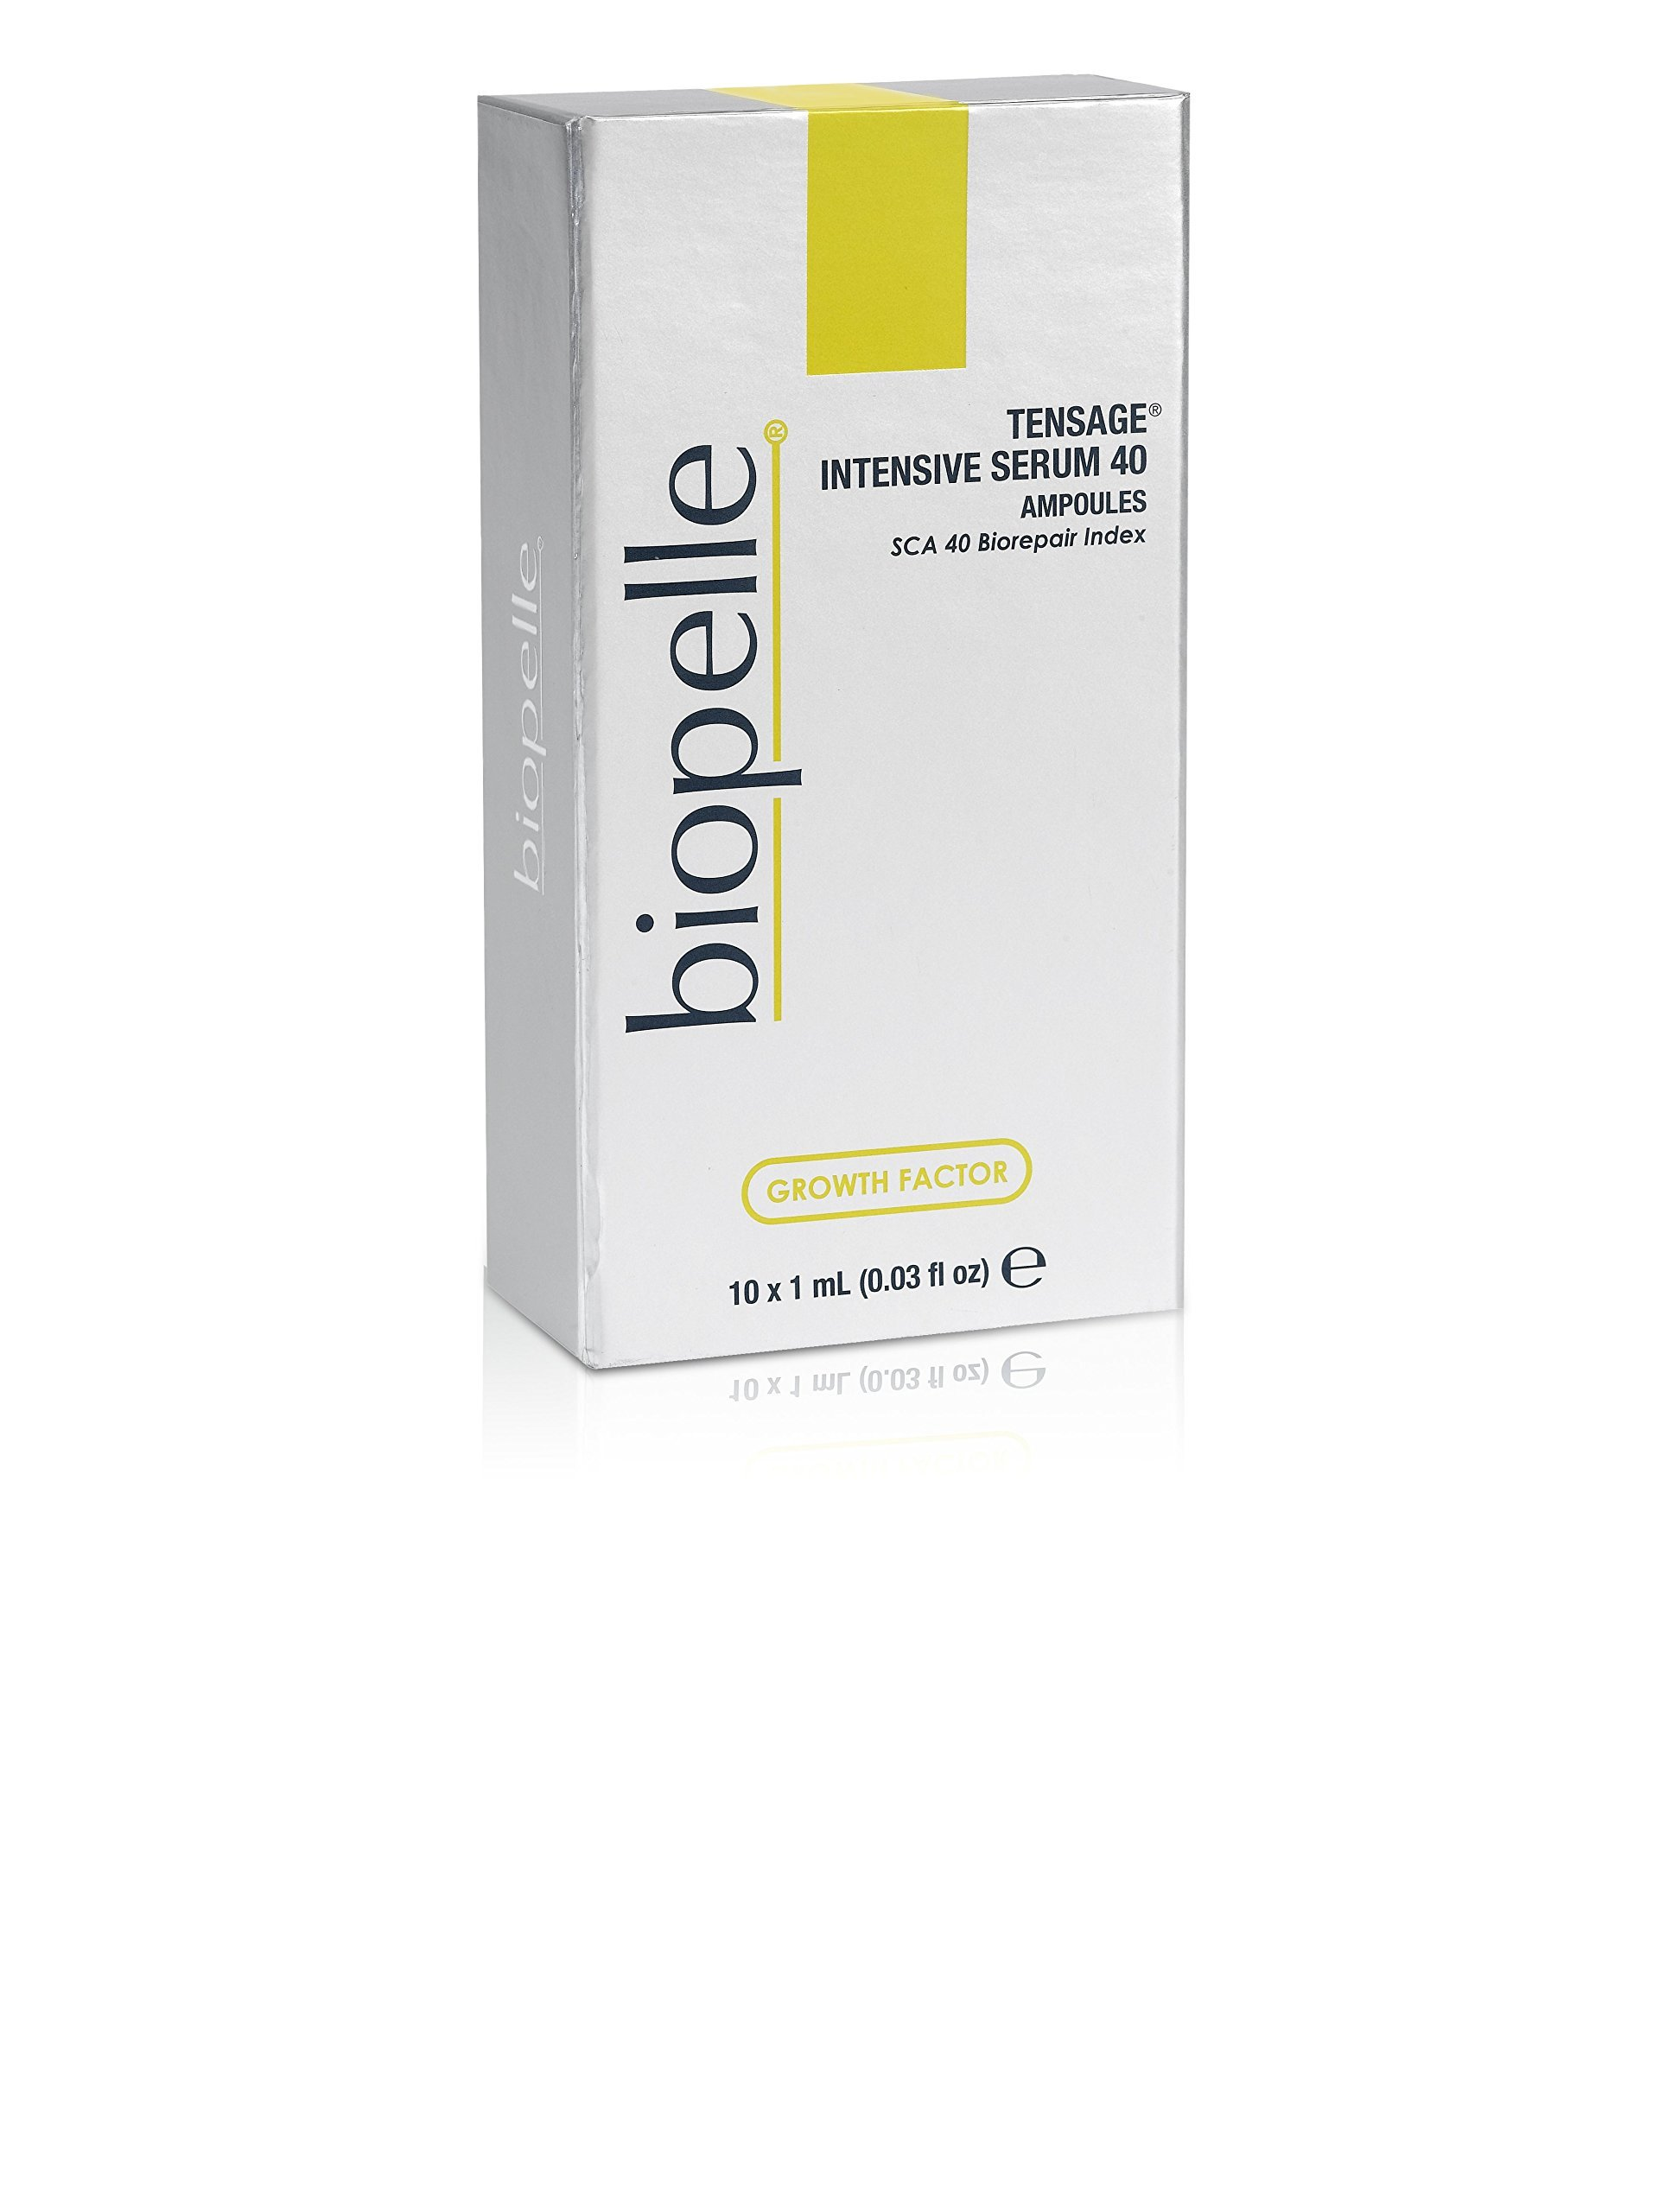 Biopelle Tensage Intensive Serum 40 10 Ampoules by biopelle